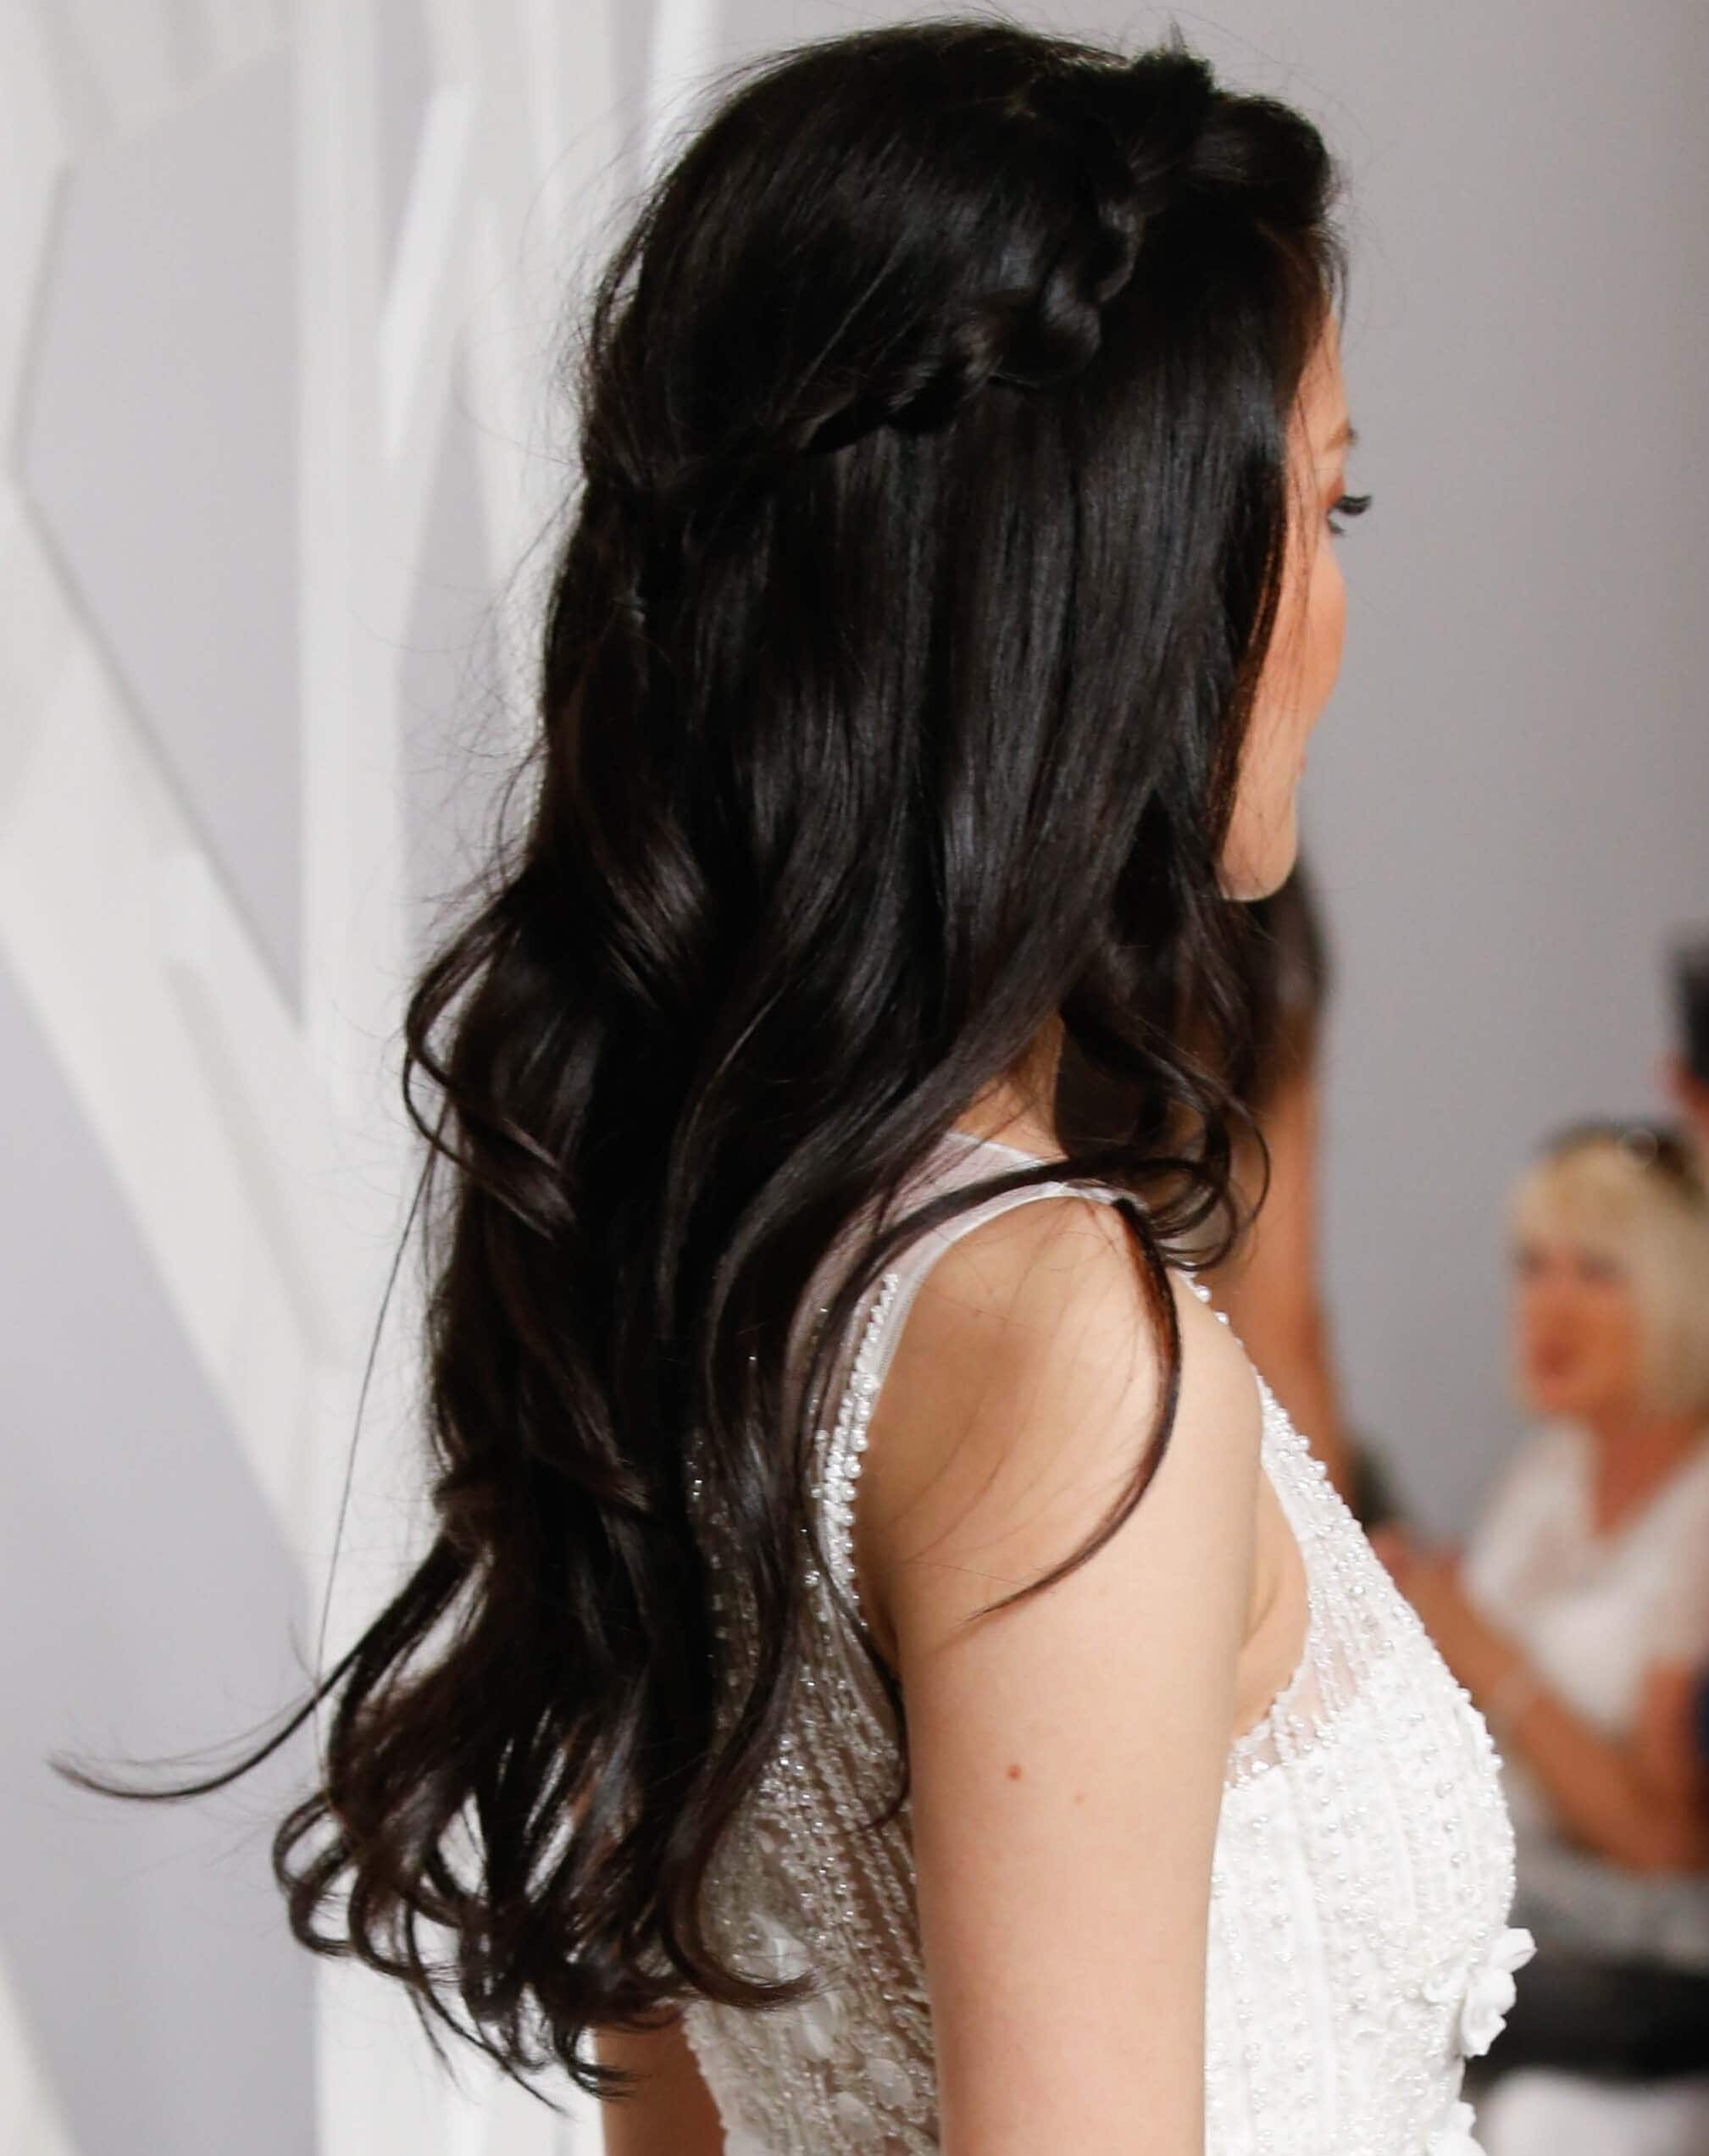 Party hairstyles: Woman with long wavy brown hair in half-up, half-down style with accent braids wearing a white dress.